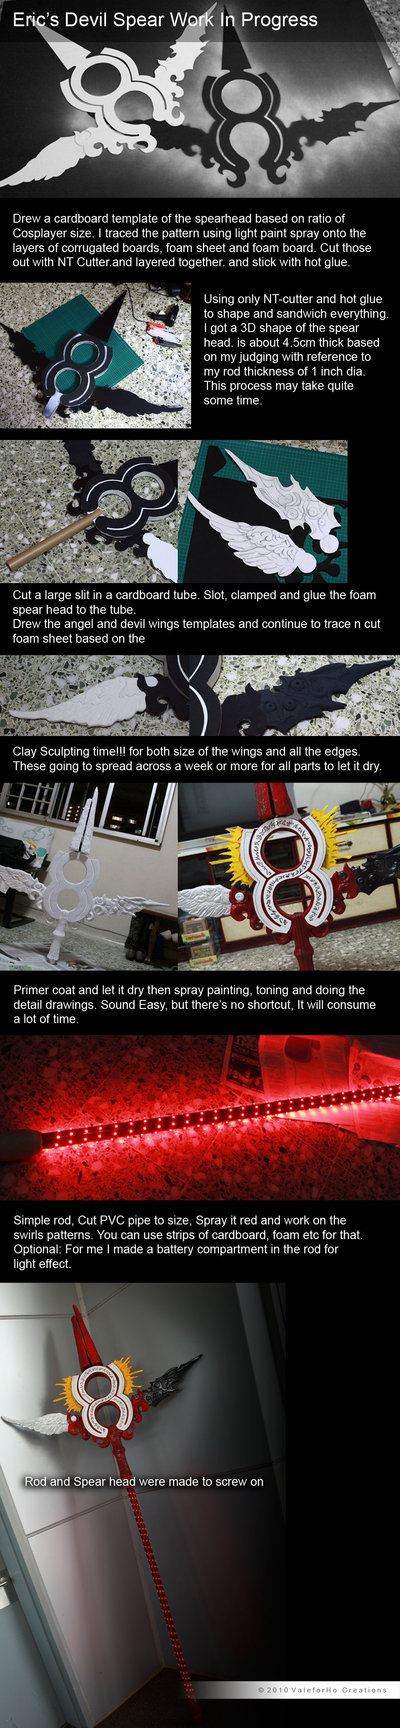 Eric S Alucard Spear Wip With Images Cosplay Diy Spear Cosplay Tutorial